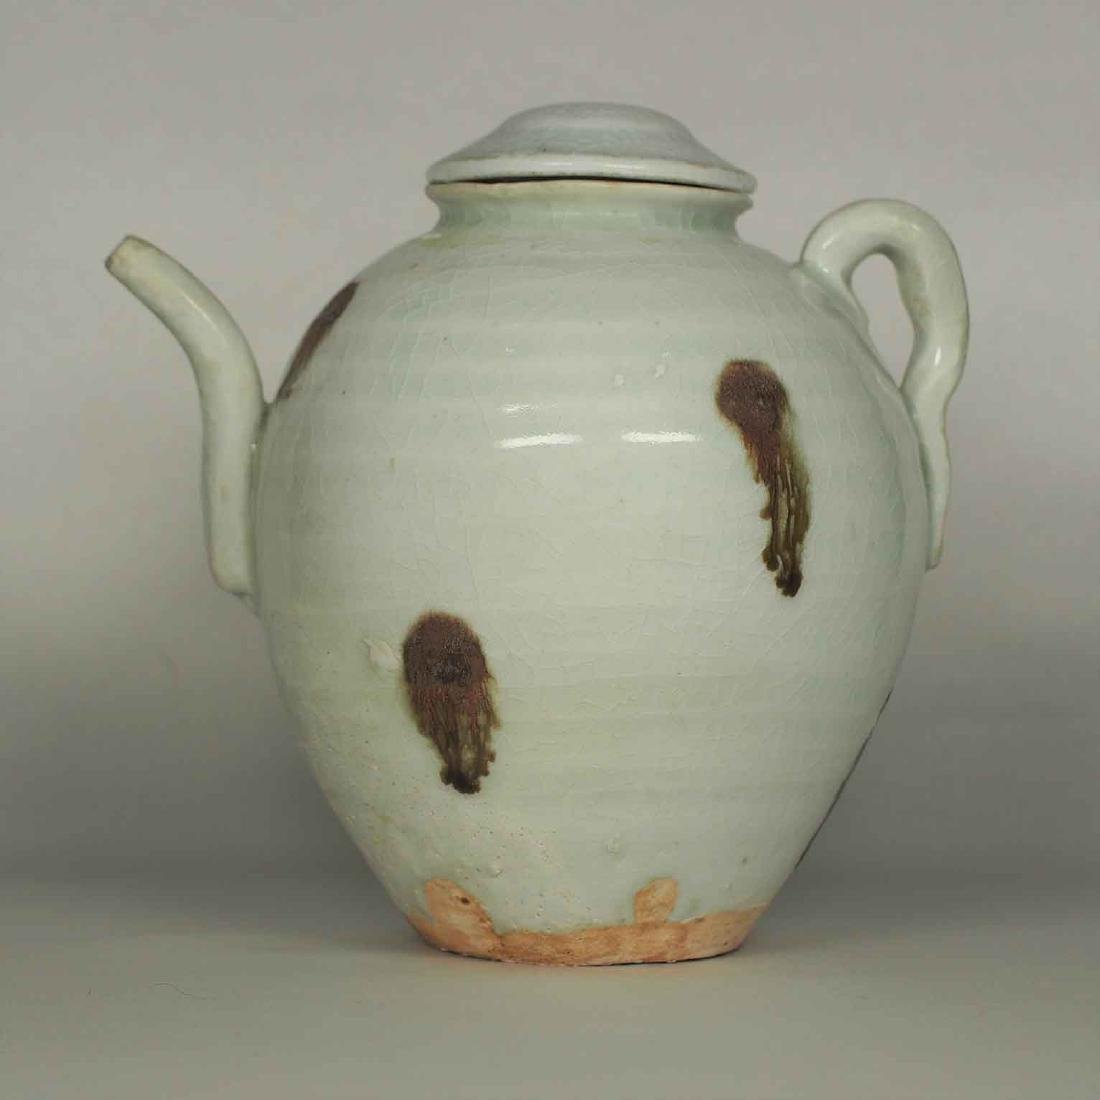 Ewer with Brown Spot, Yuan Dynasty - 3